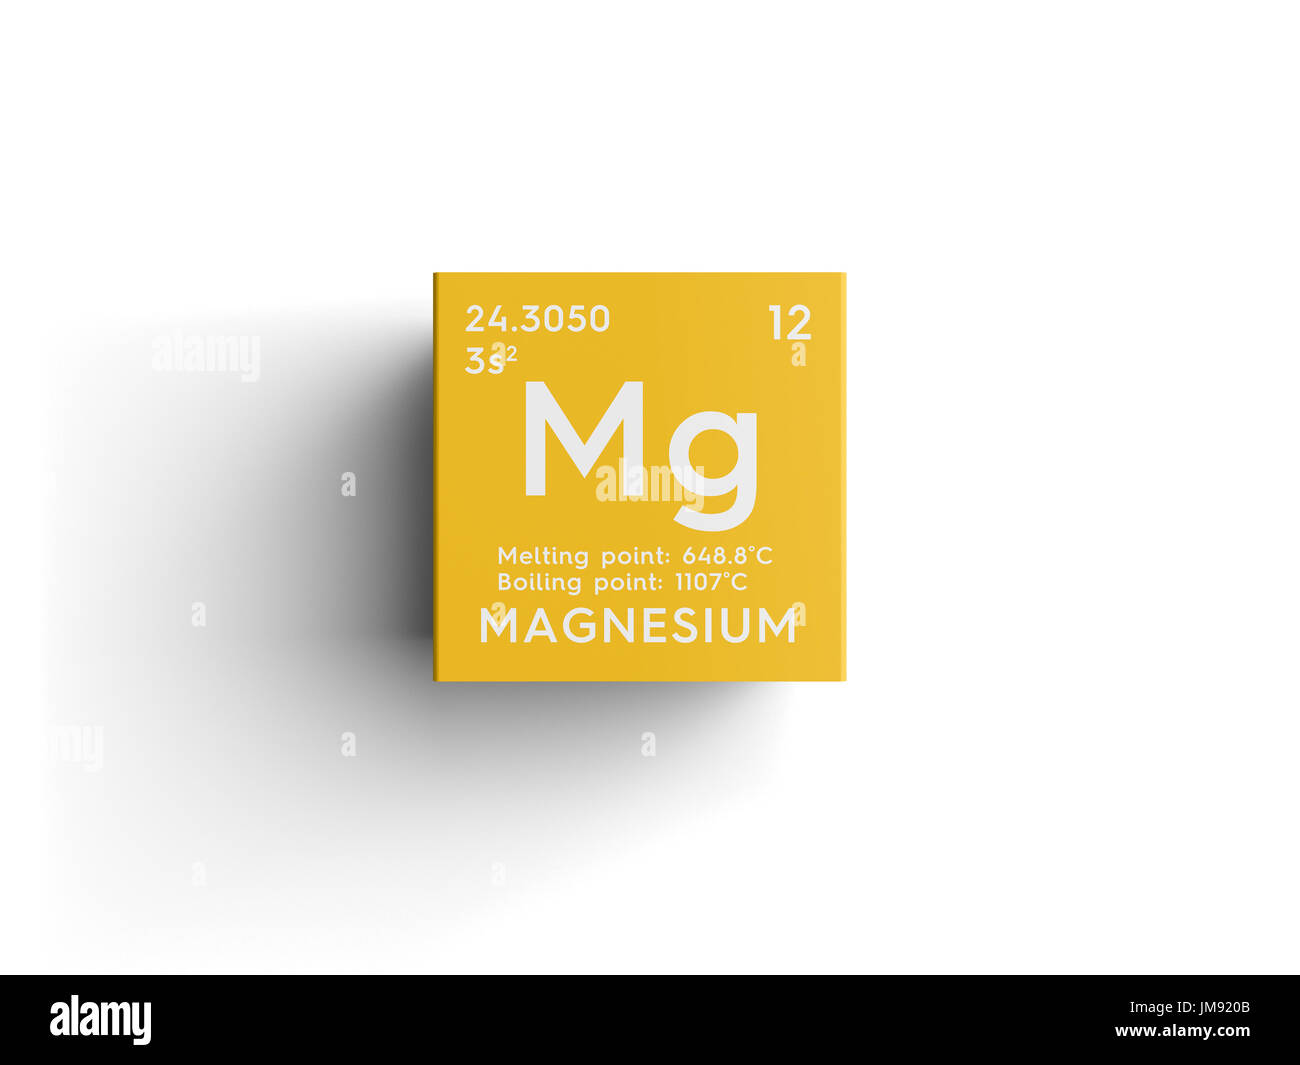 Magnesium alkaline earth metals chemical element of mendeleevs alkaline earth metals chemical element of mendeleevs periodic table in square cube creative concept urtaz Gallery